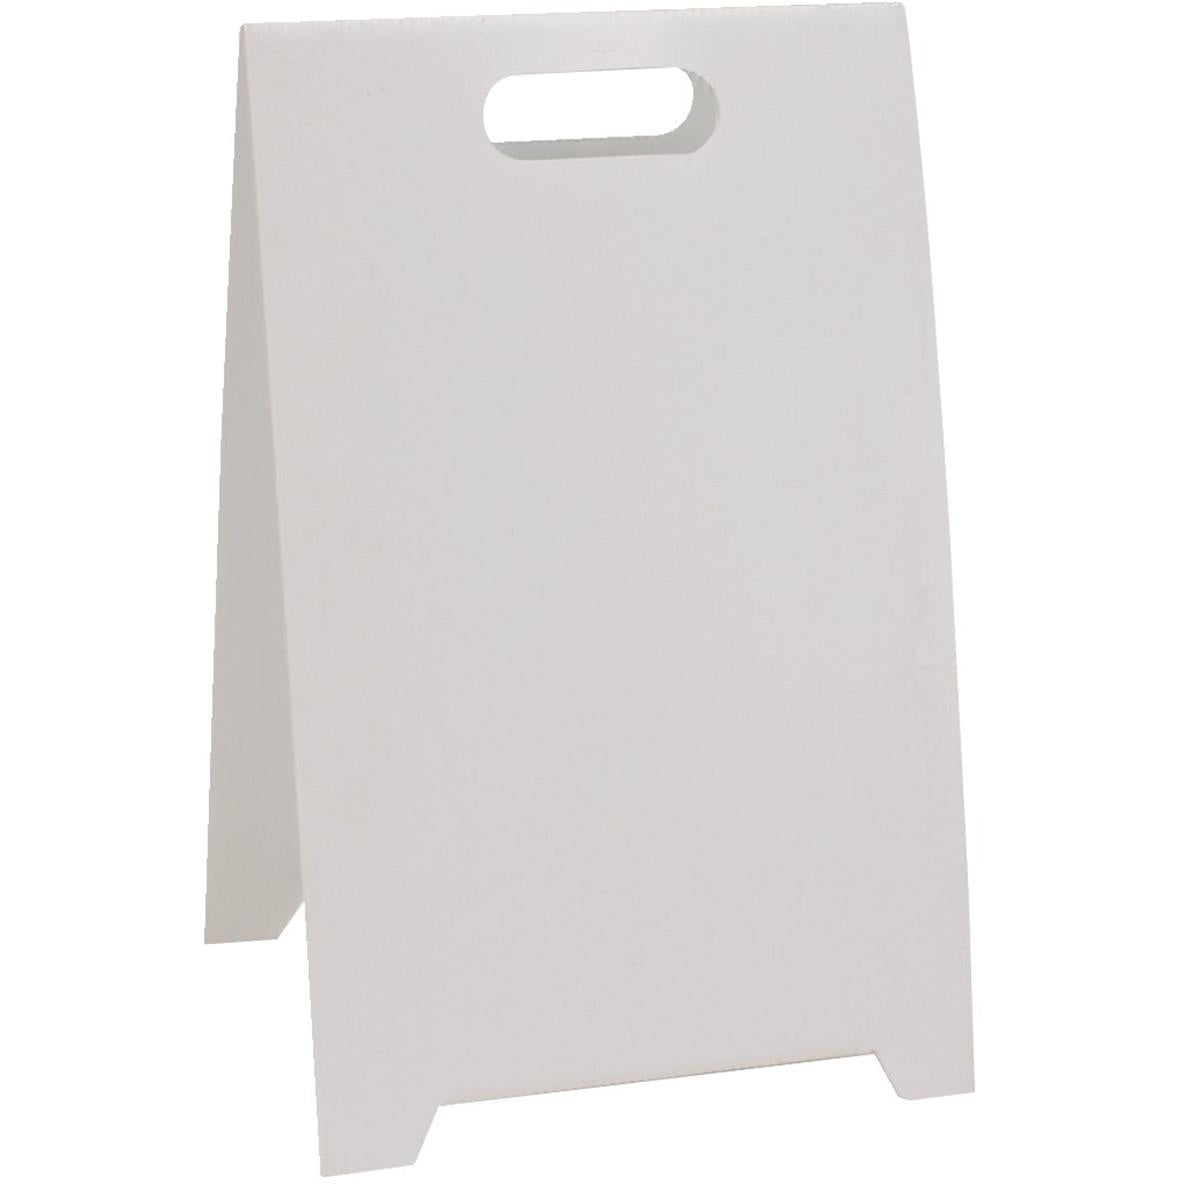 Blank White Floor Stand Sign Gempler S